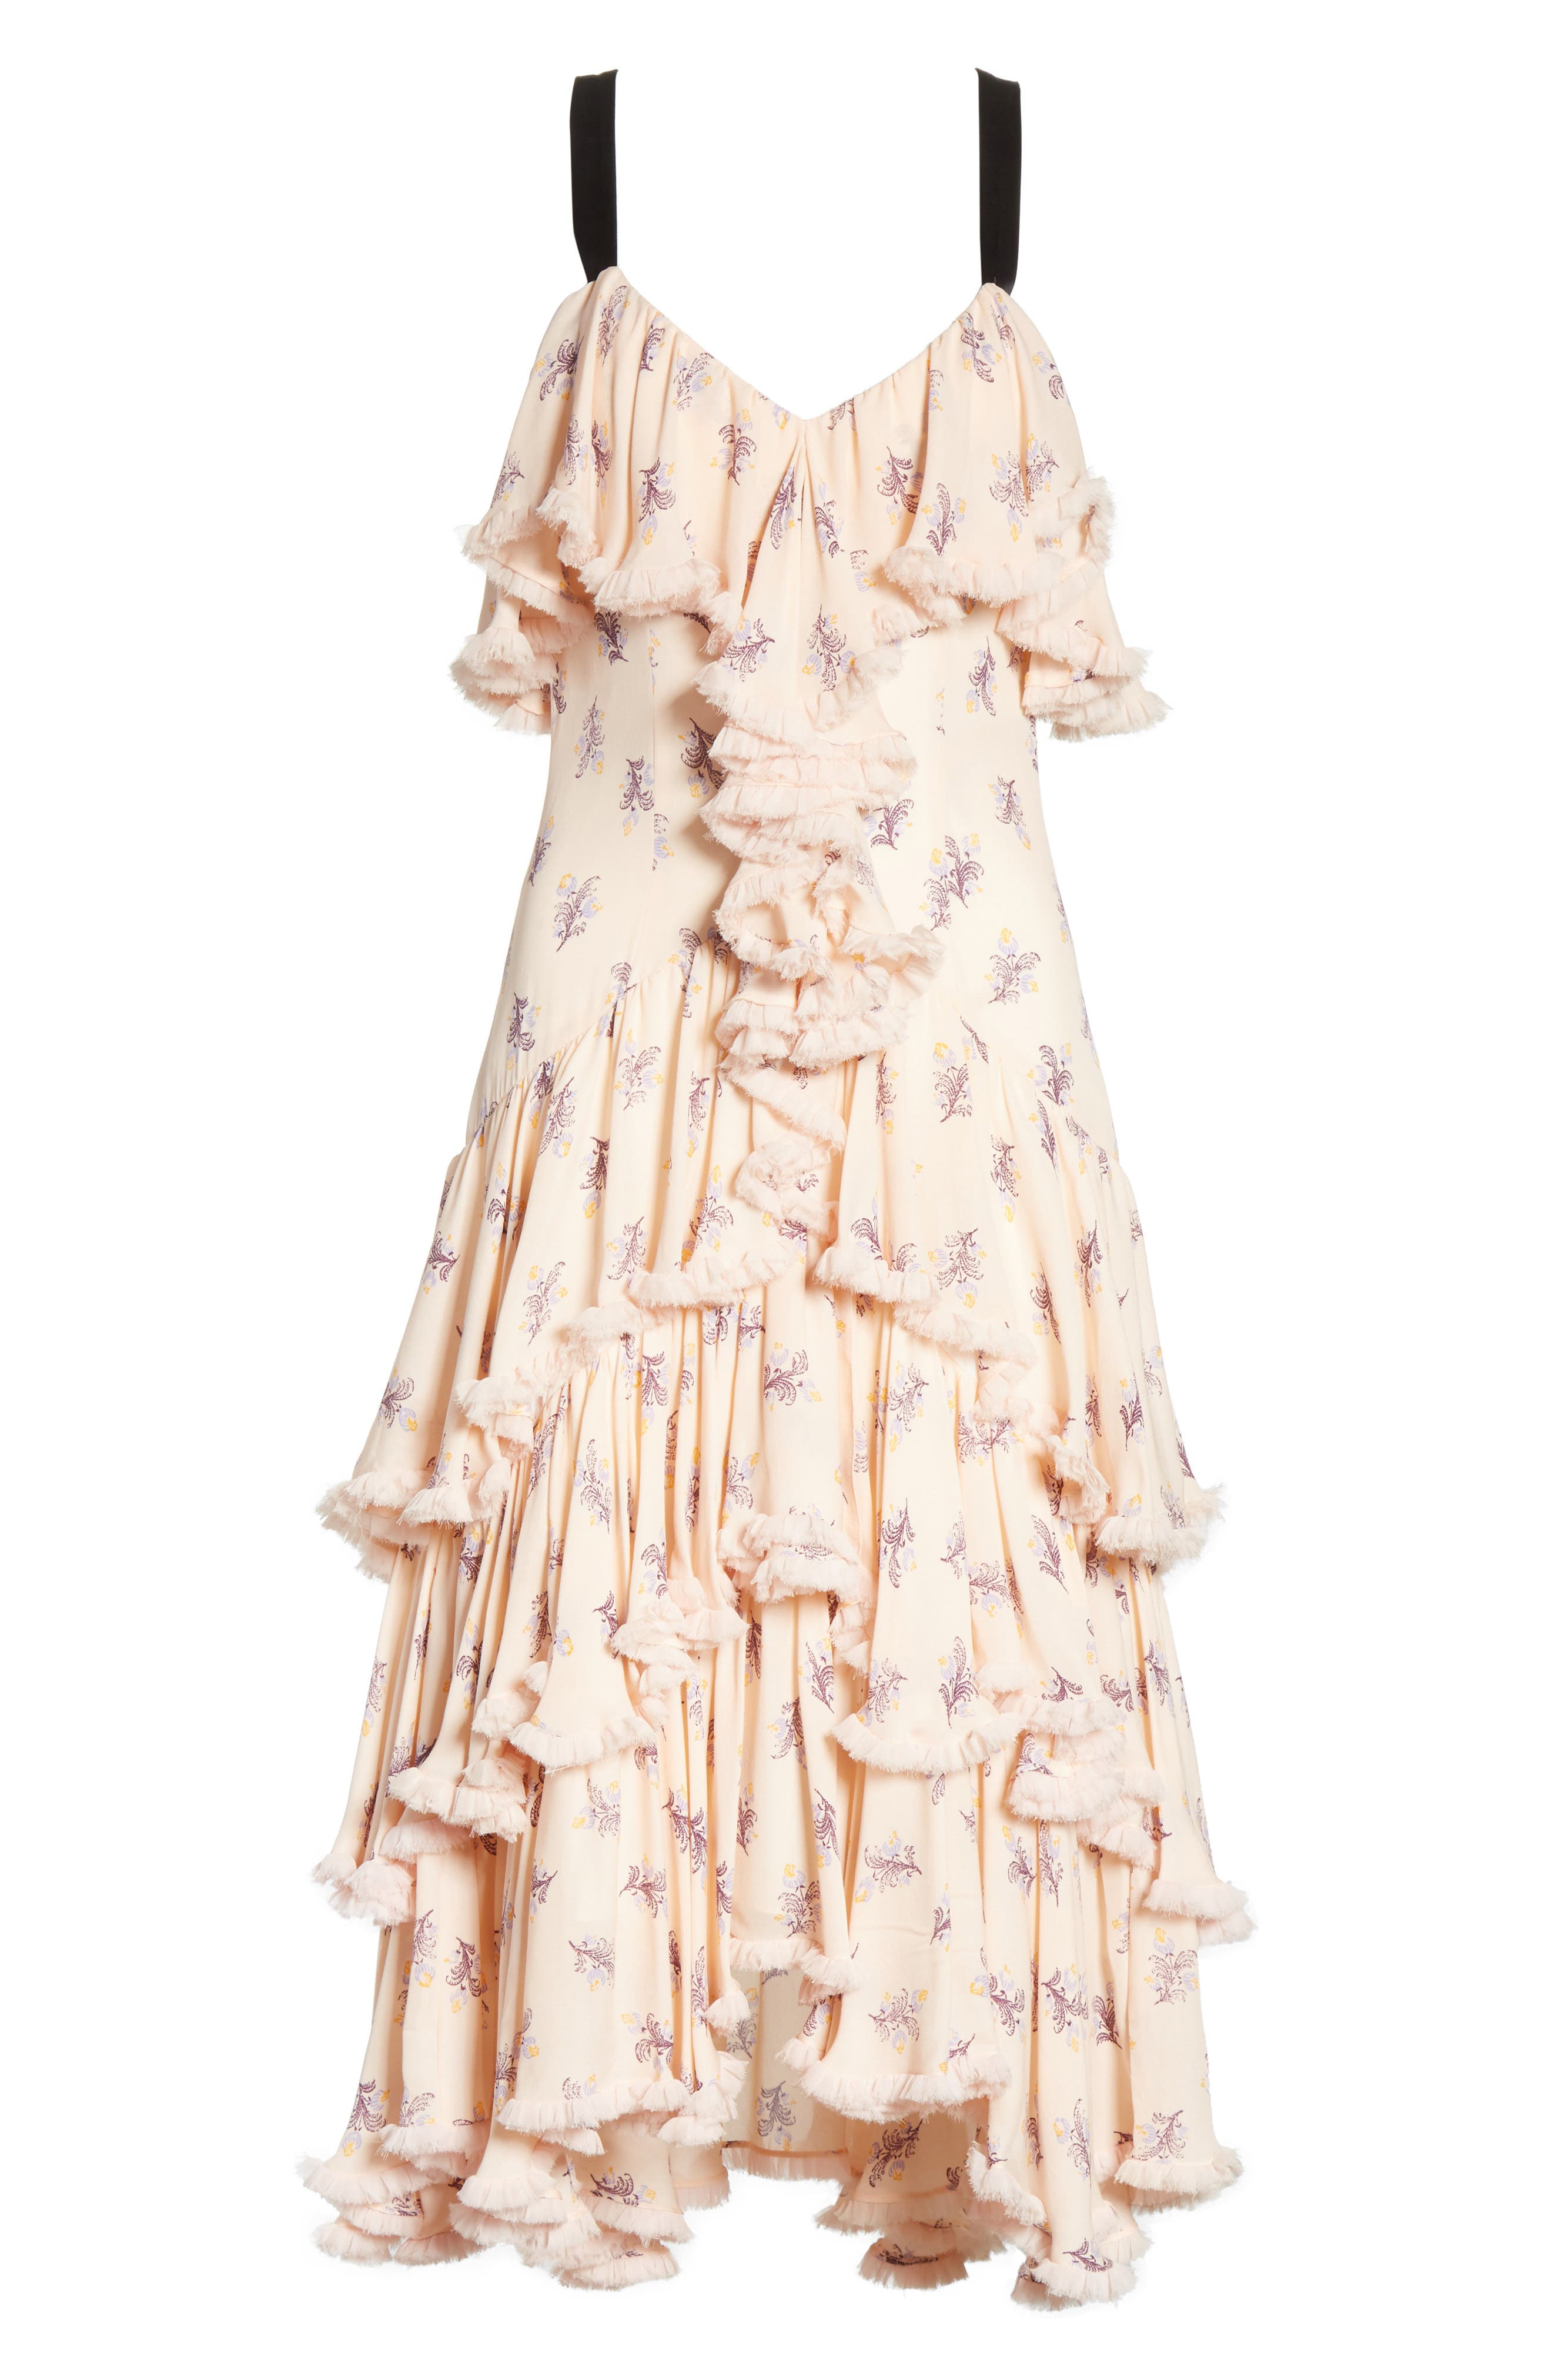 Edie Floral Print Tiered Silk Dress,                             Alternate thumbnail 6, color,                             Pearl Blush Multi